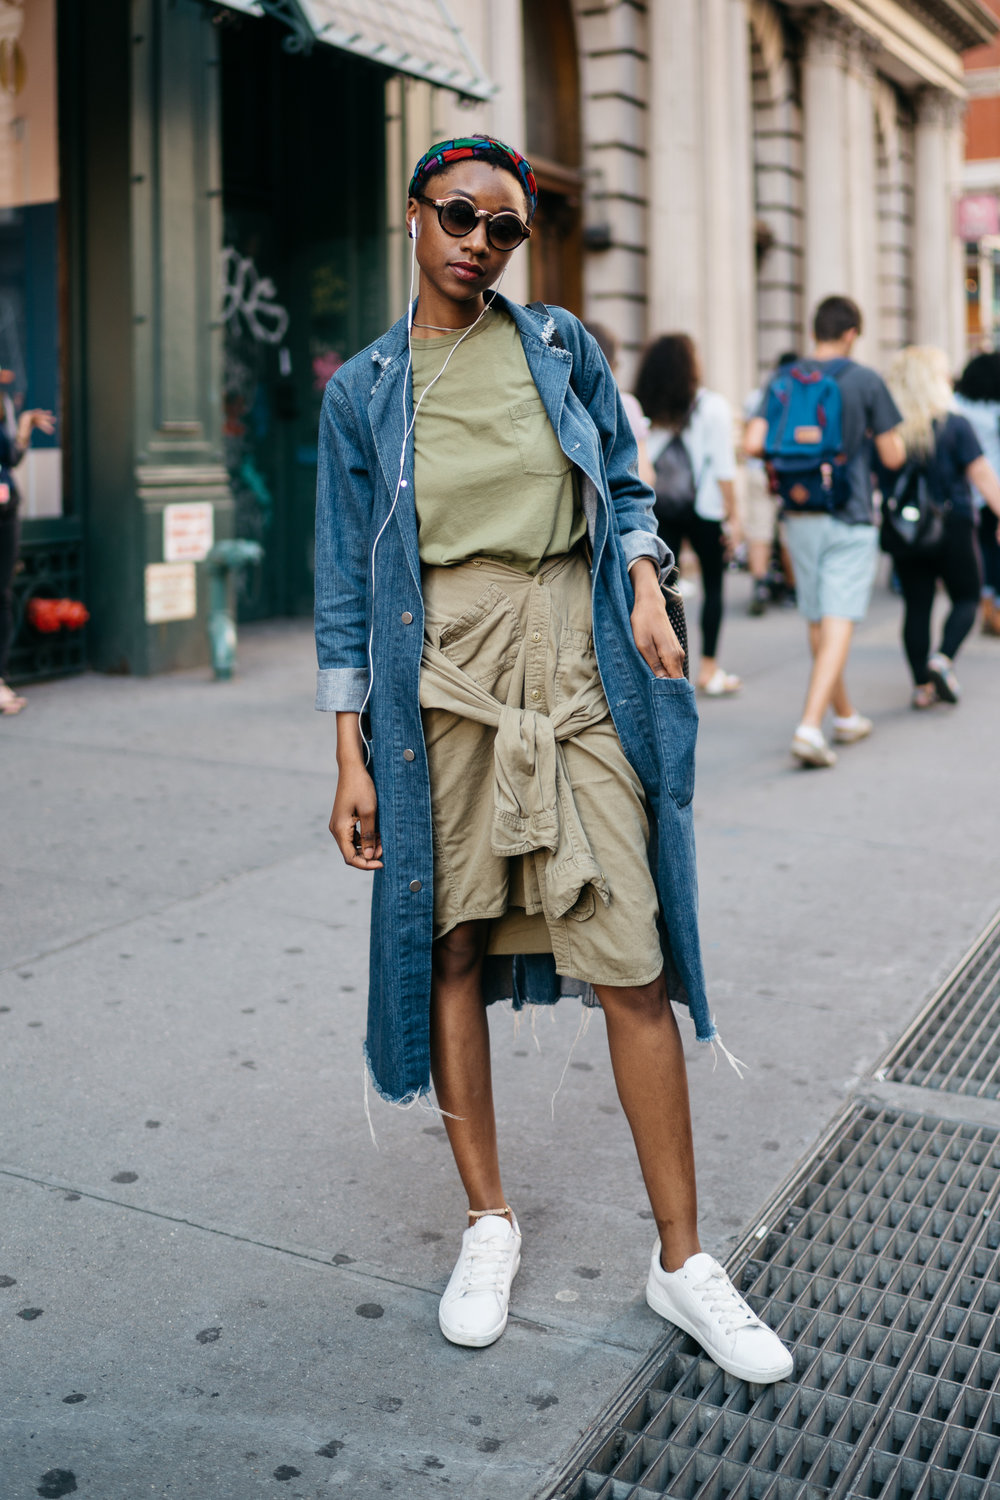 Olive in The City  - Urban Outfitters UO Cross dyed Stevens button down shirt (worn as a skirt), Denim long jacket, American Apparel fine jersey crewneck pocket tee, Zara Trafaluc white sneakersPicture taken by: David Lou